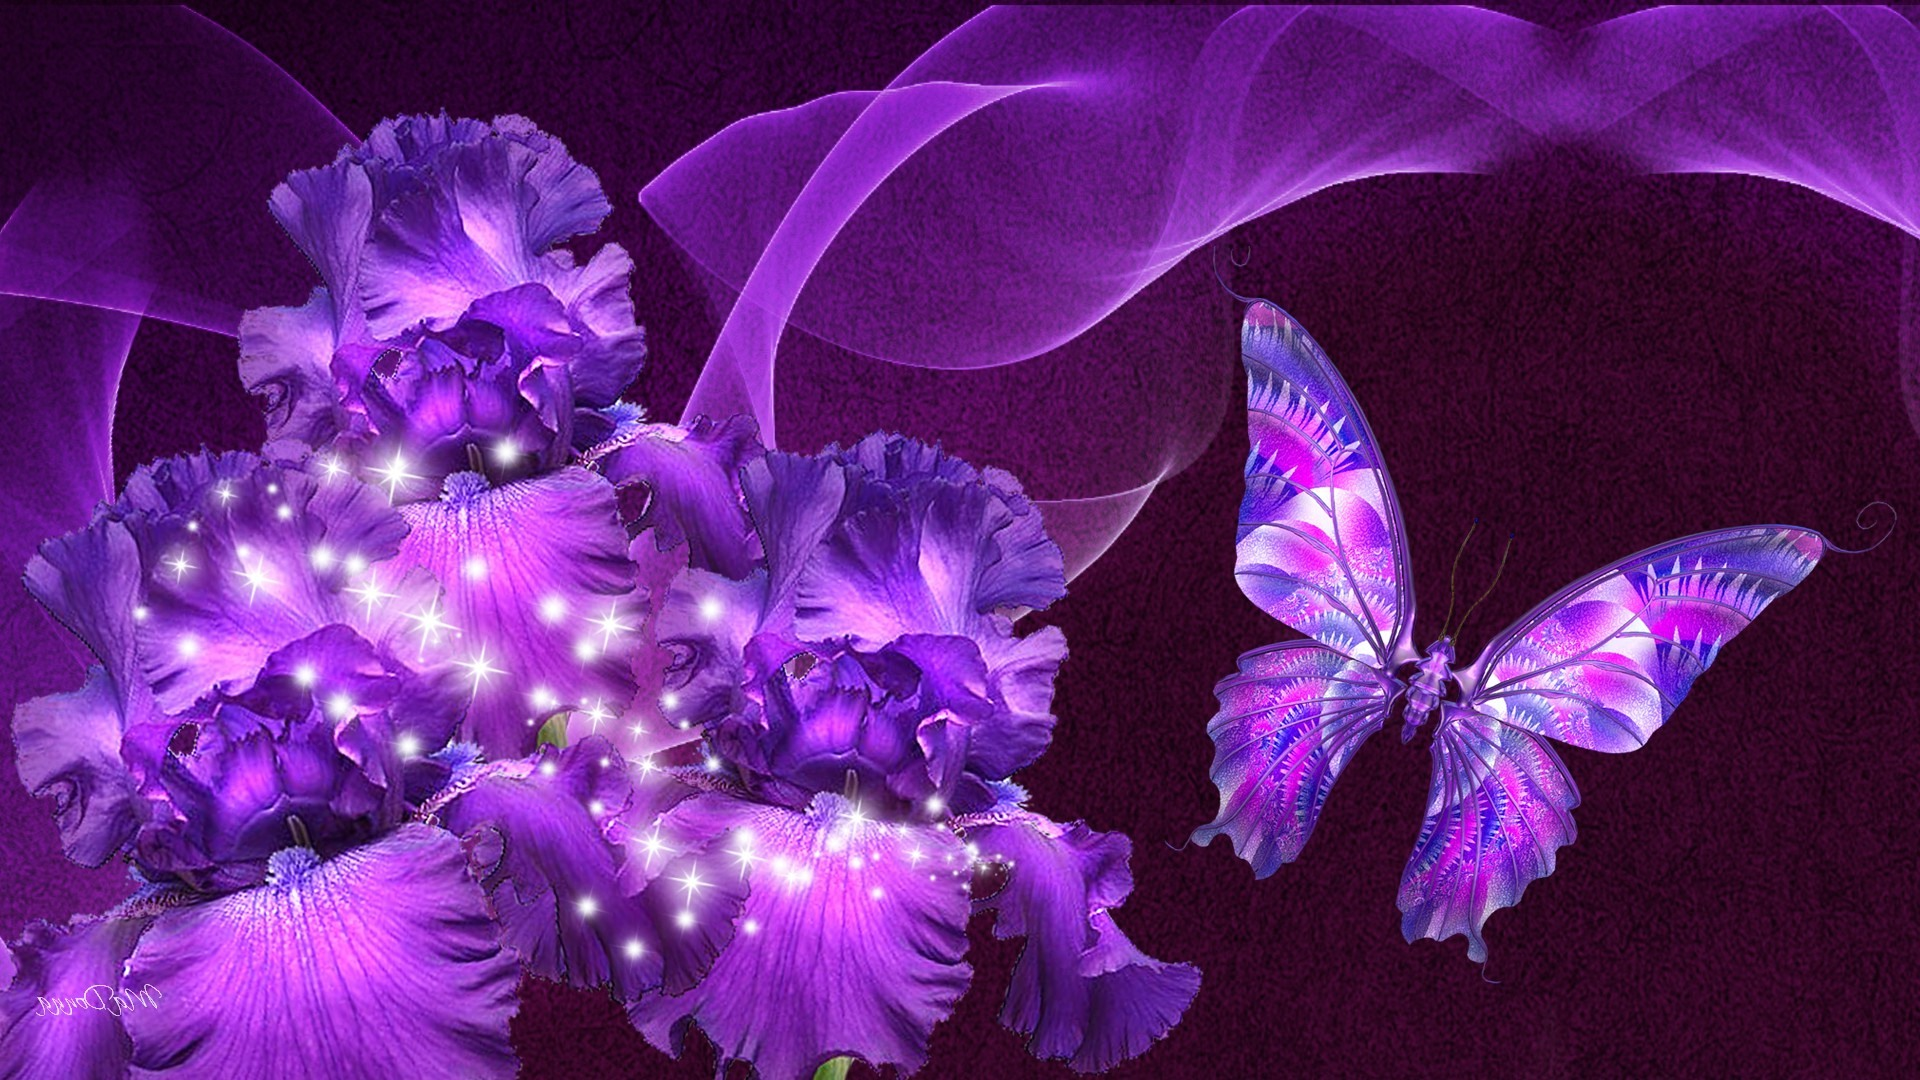 Purple Butterfly Wallpaper Hd Resolution at Abstract Monodomo 1920x1080